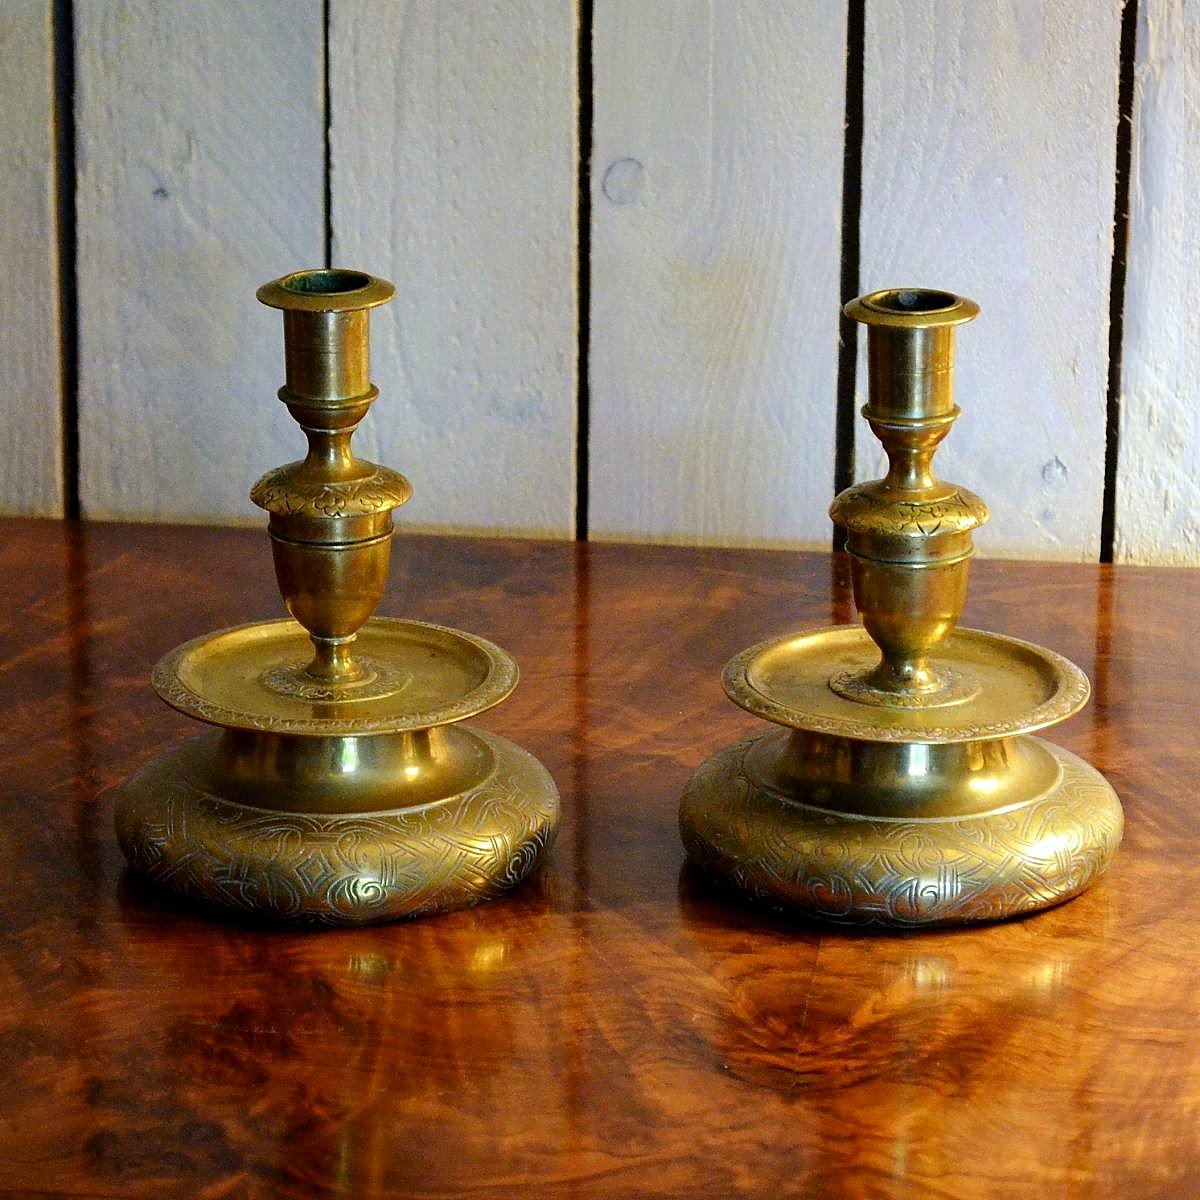 Pair Of Bronze Candlesticks Candlesticks XVII